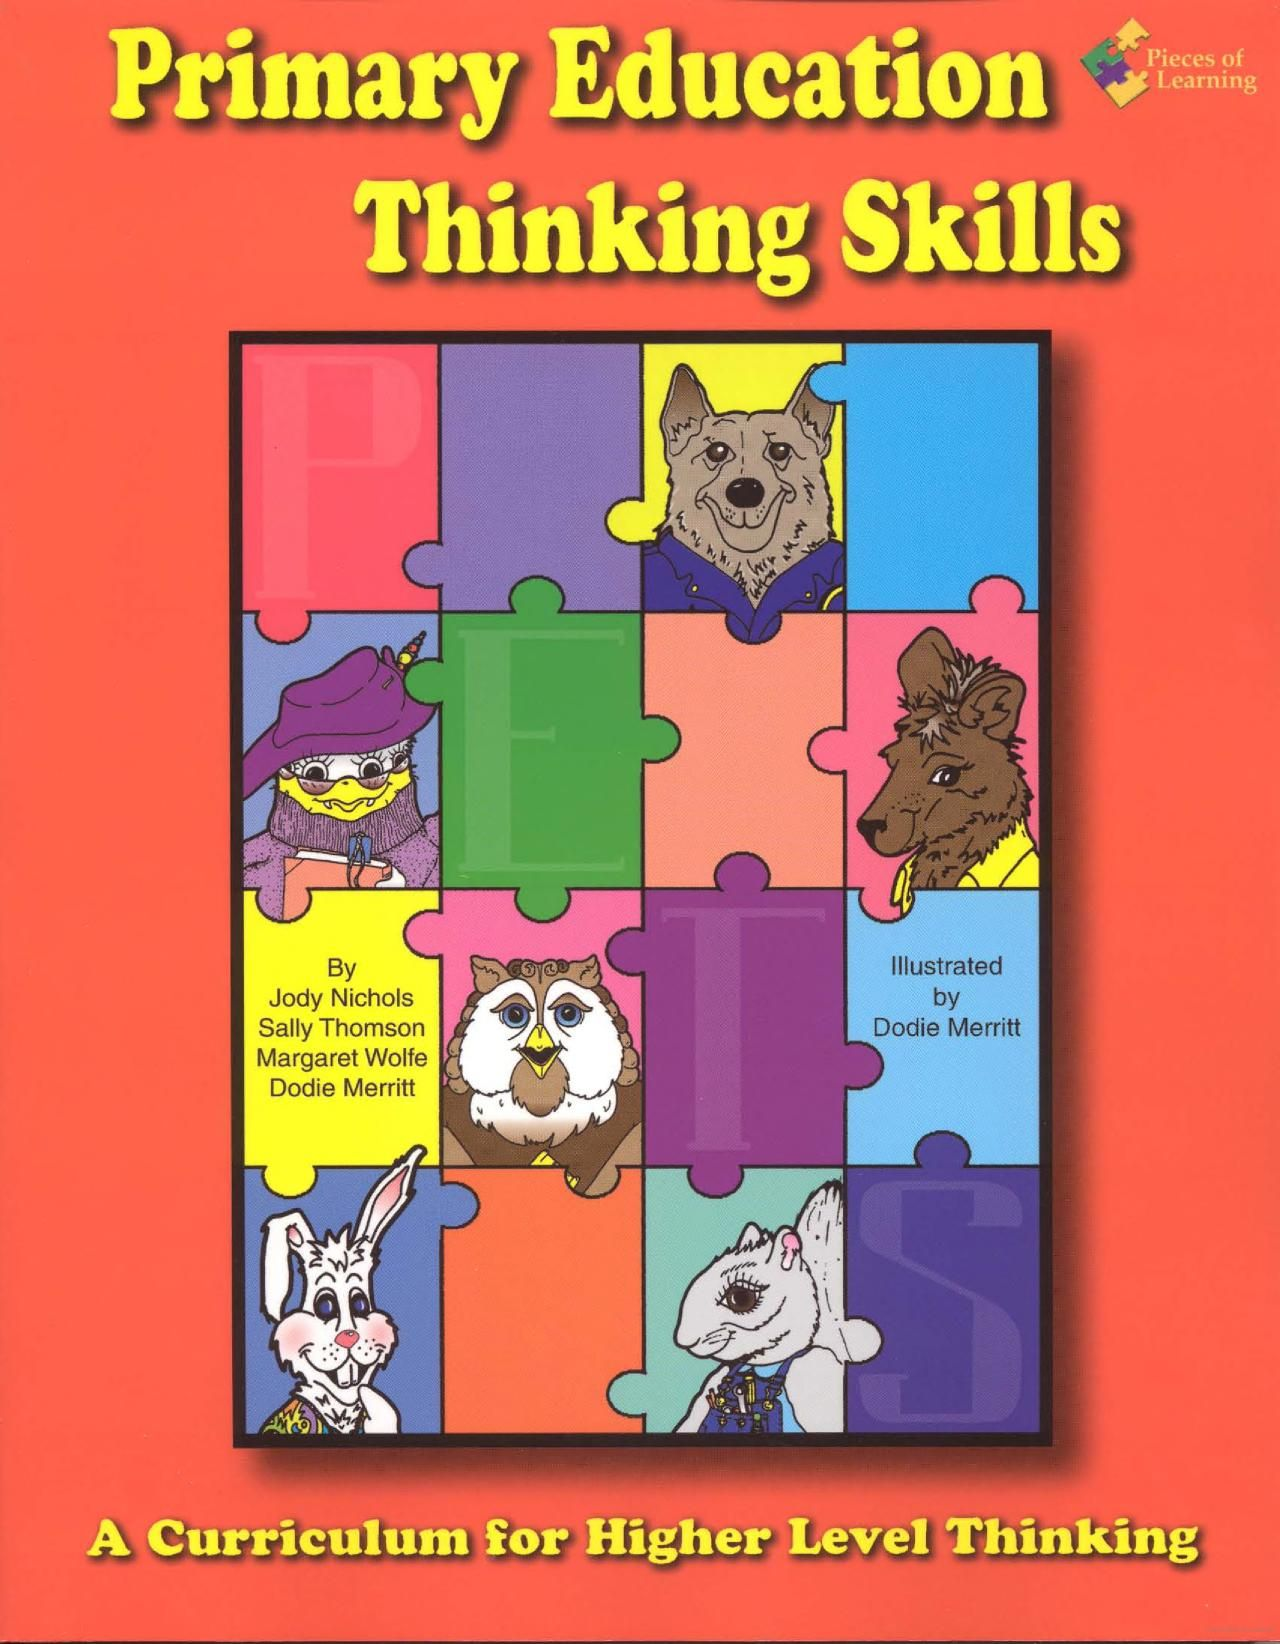 Primary Education Thinking Skills 1 Thinking Skills Primary Education Education Skills